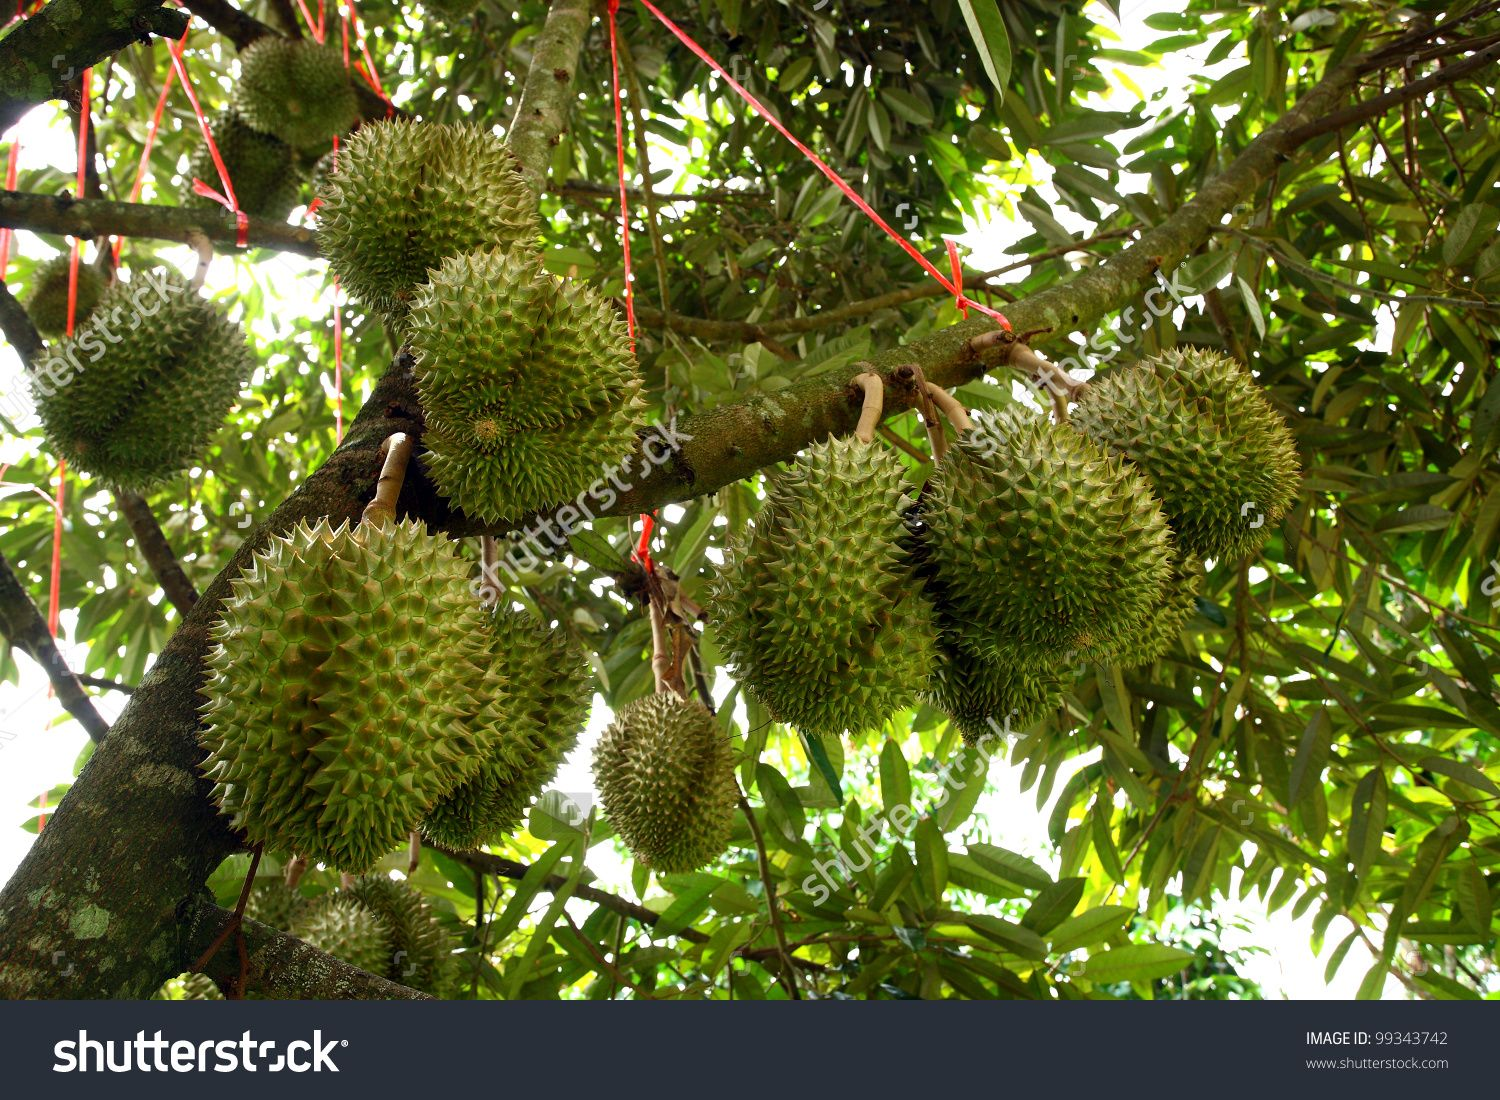 How to pick and eat durian fruit the washington post - Stage 3 Lots Of Ripe Durians Growing On The Tree